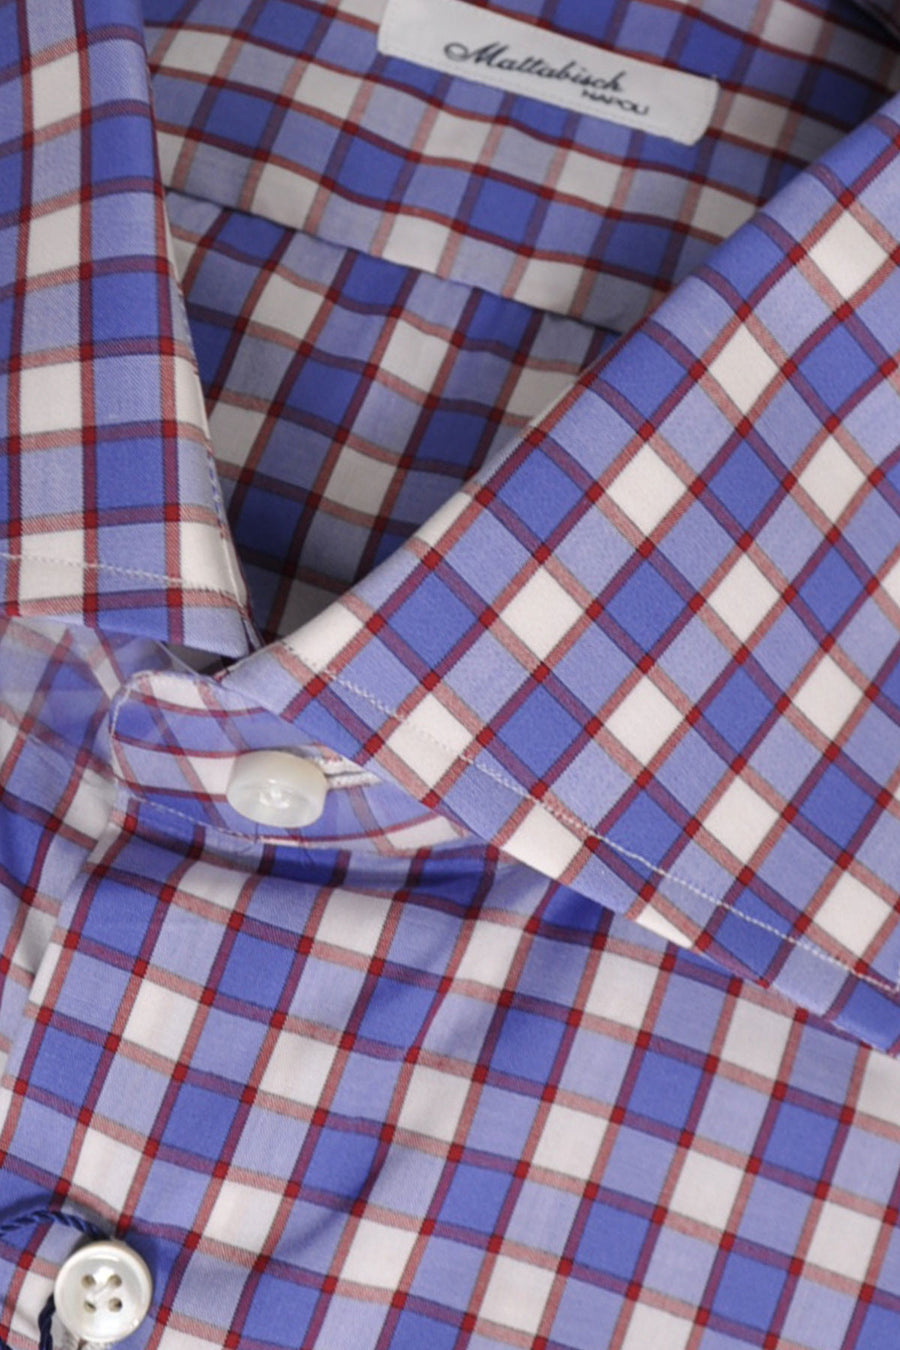 Mattabisch Dress Shirt White Blue Bordeaux Check